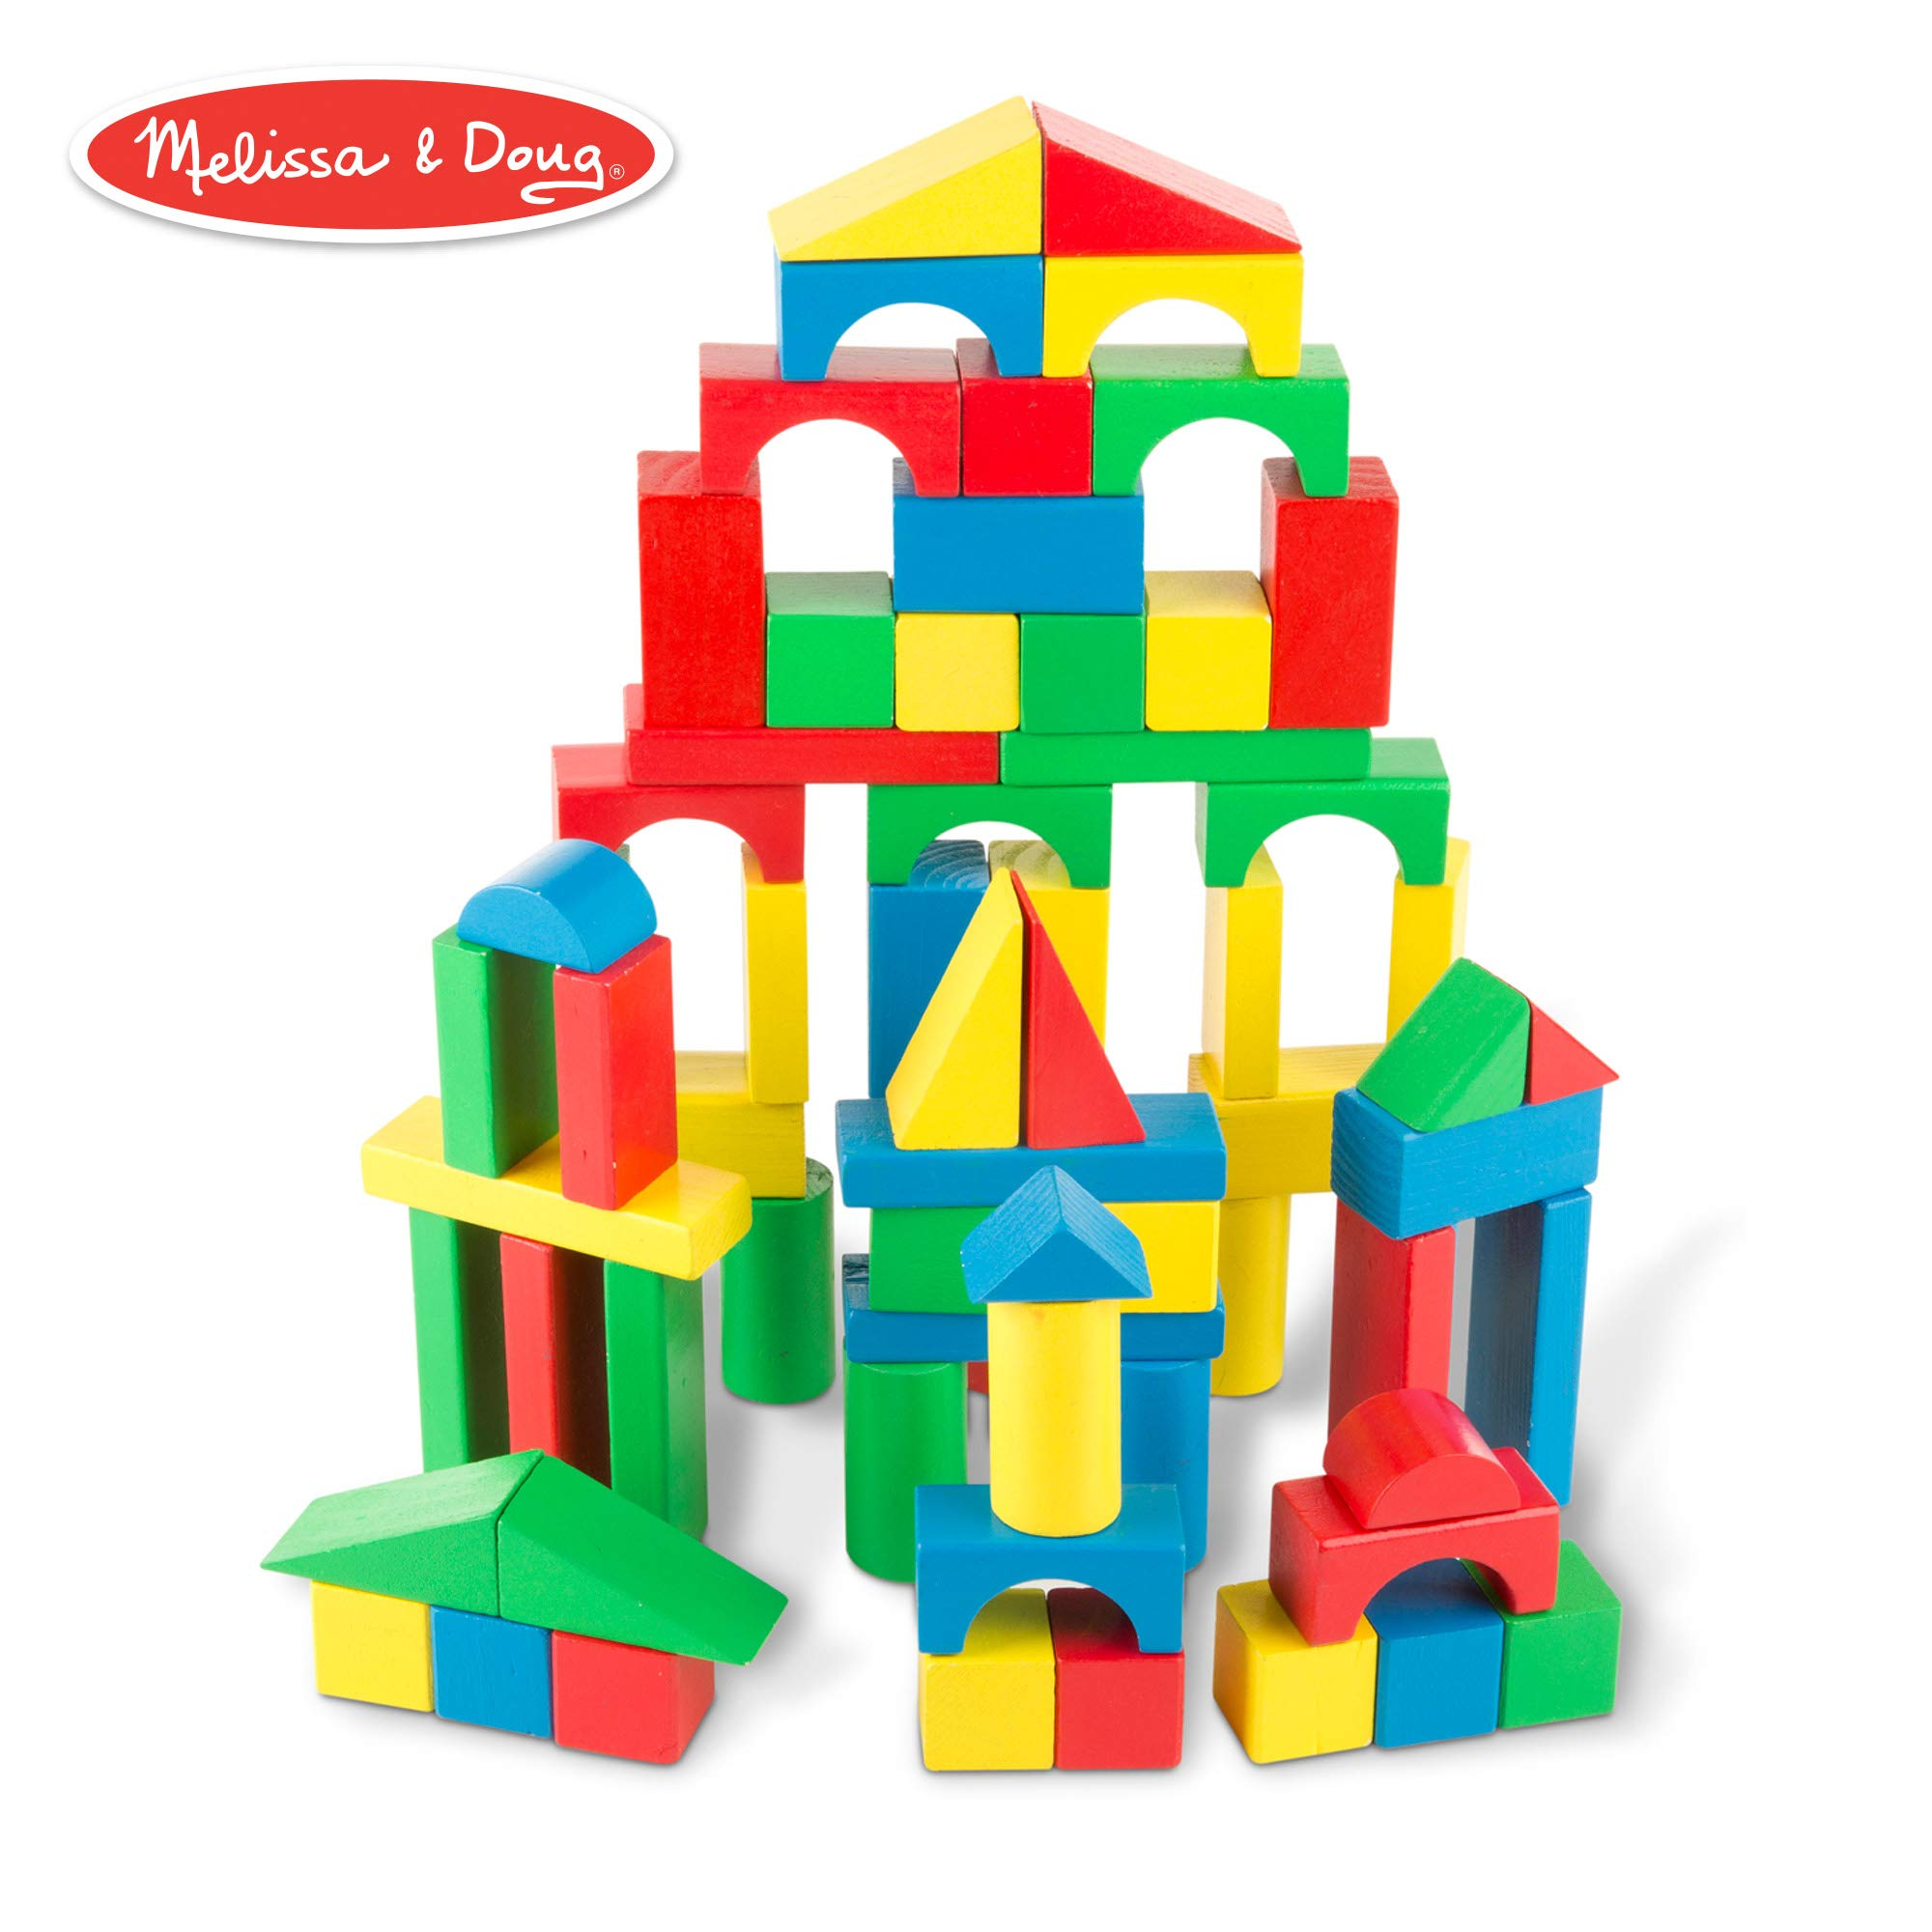 Trees and City Buildings Cars Little Town Colorful Solid Wood Set Jigsaw Puzzle Mat Wooden Building Blocks for Toddlers Educational Baby Toy for Boys and Girls Toy Chest Nyc 100 Pieces Include People